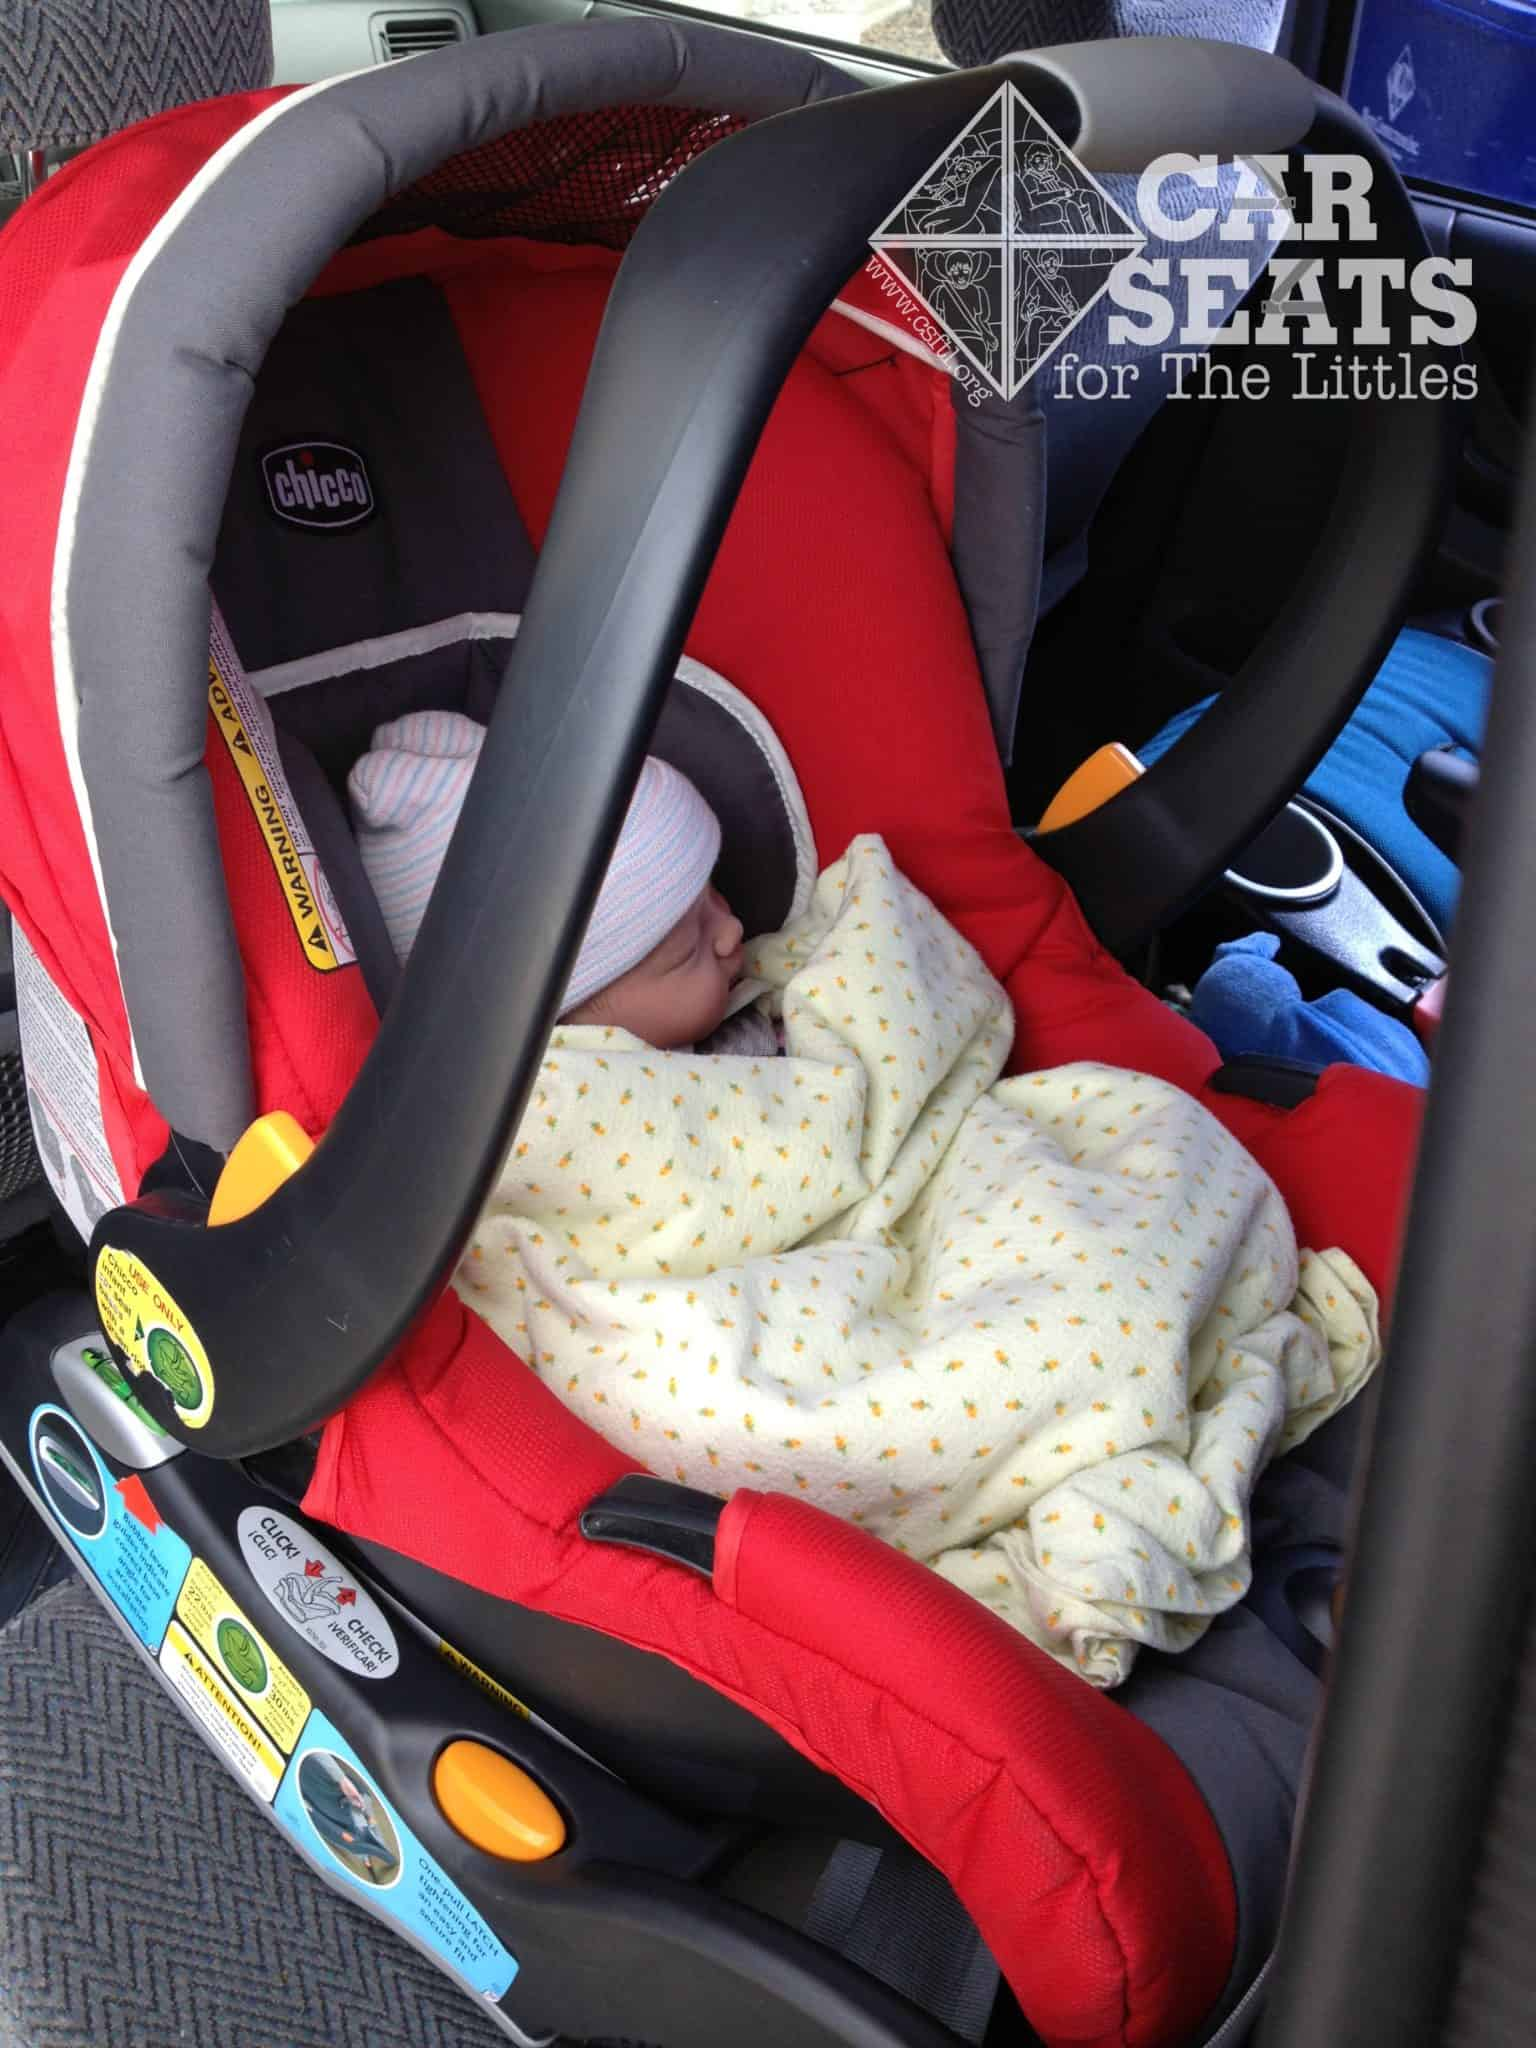 Infant Carrier That Is Not A Car Seat Choosing A Convertible Car Seat For A Newborn Car Seats